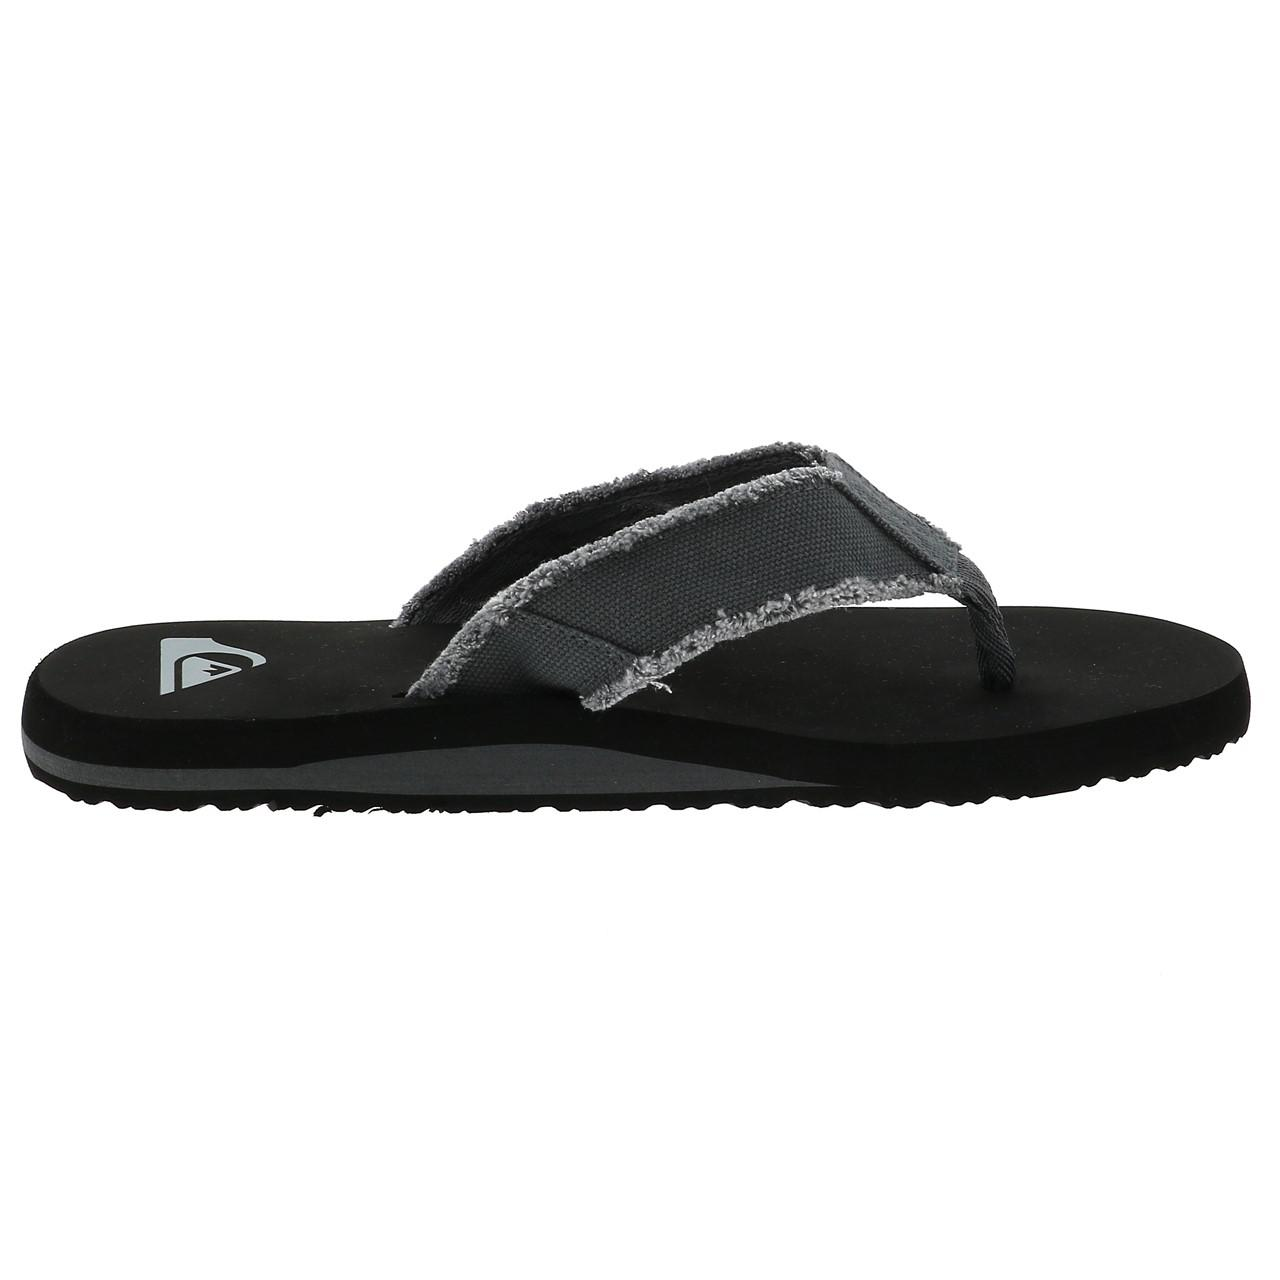 Flip-Flops-Tap-Dance-Shoes-Quiksilver-Monkey-Abyss-Groups-Blk-Flop-Grey-17978 thumbnail 4